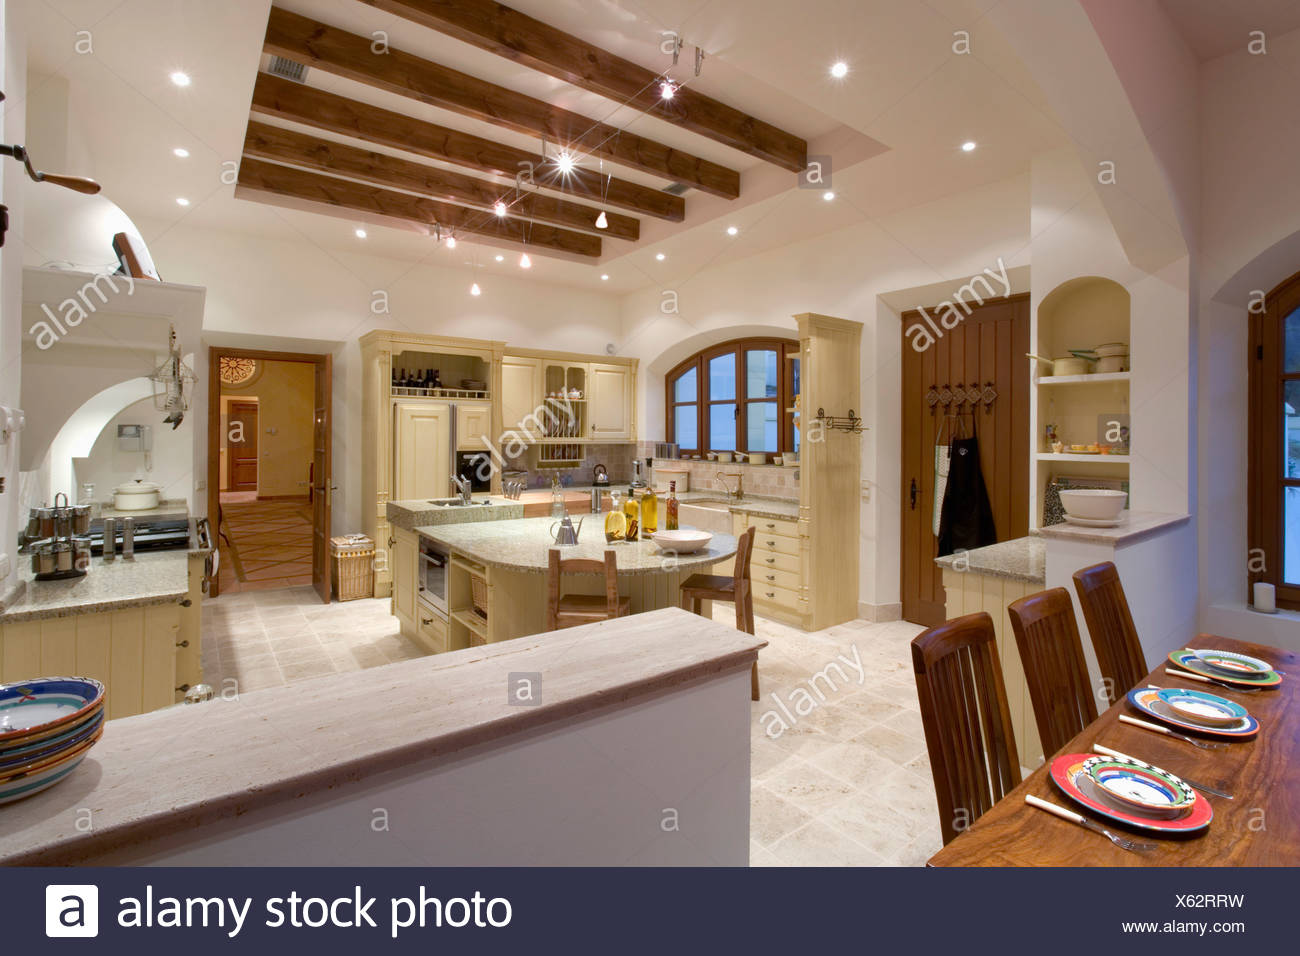 Travi A Vista Illuminazione large kitchen in spanish villa stock photos & large kitchen